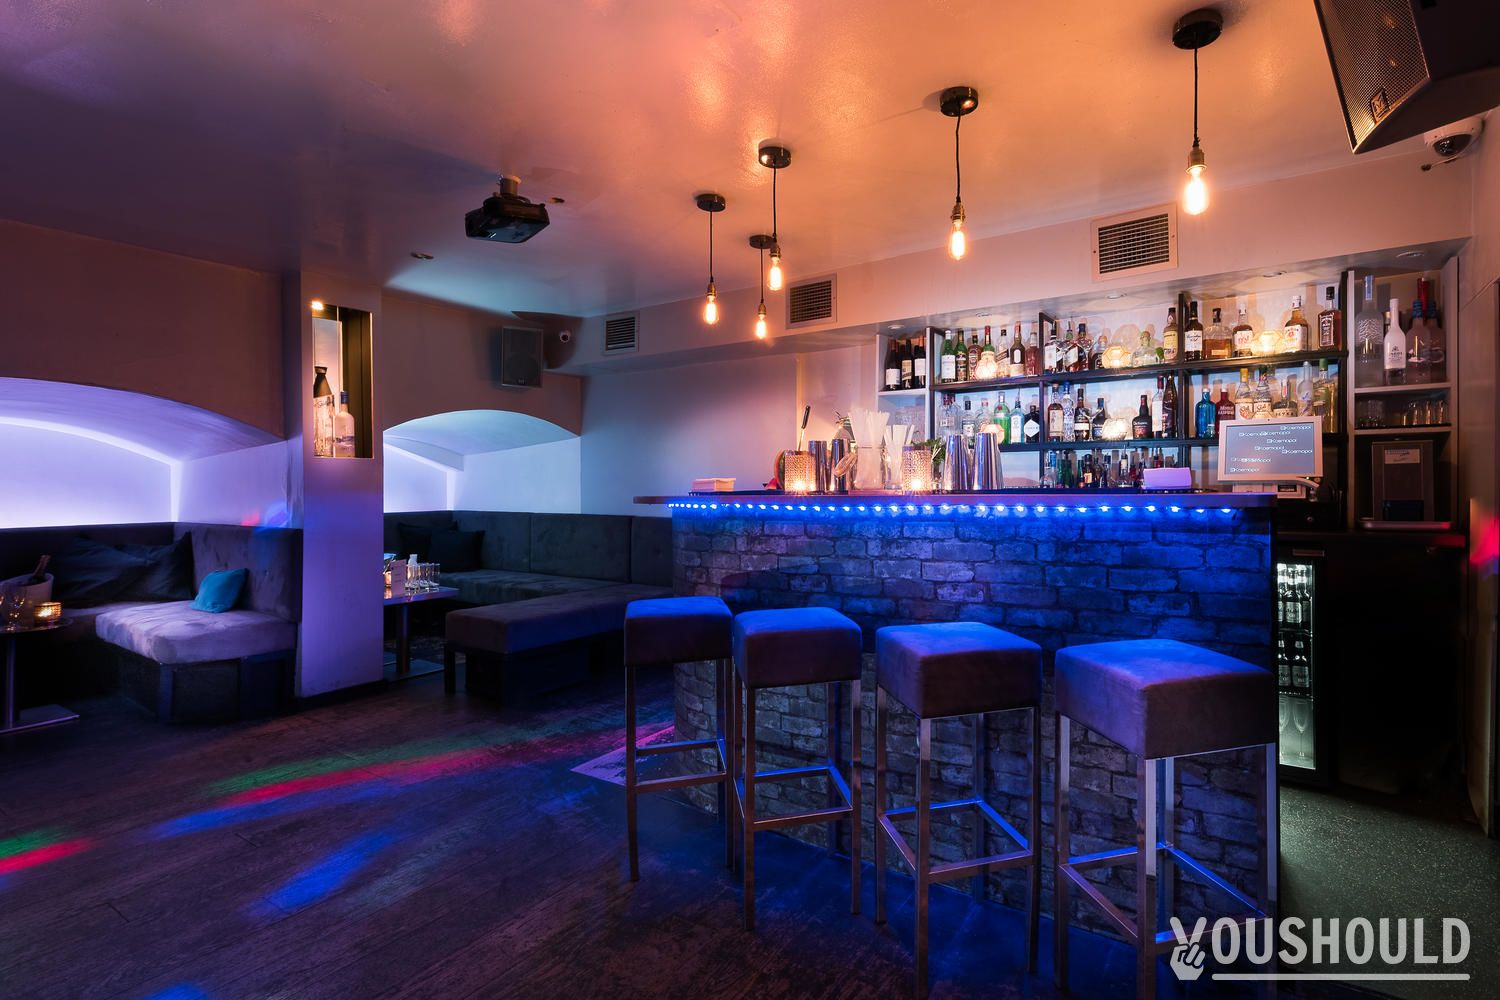 10 best bars and pubs bookable for free in London